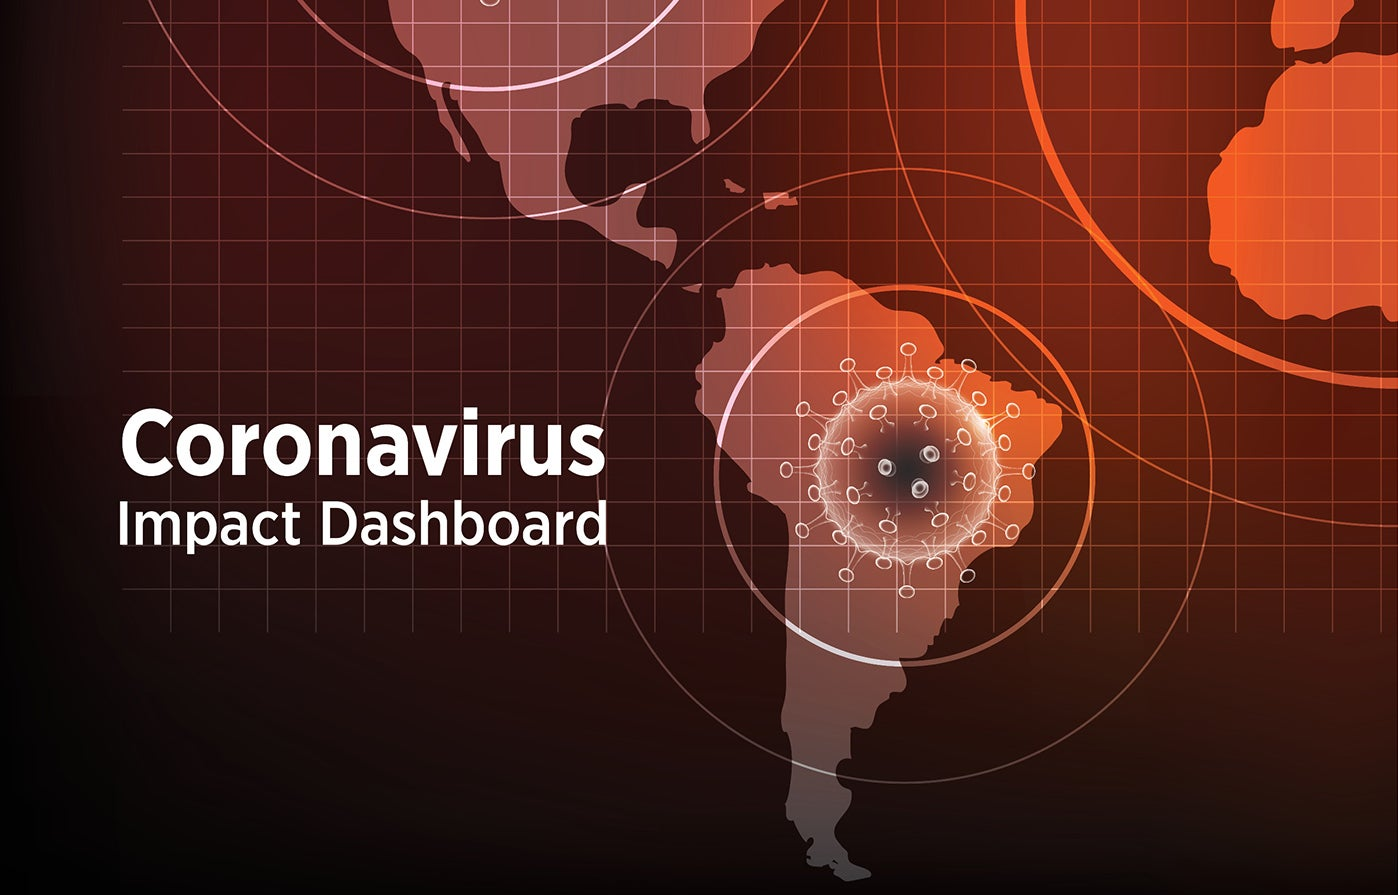 Coronavirus Impact Dashboard: The Effects of Social Distancing Measures